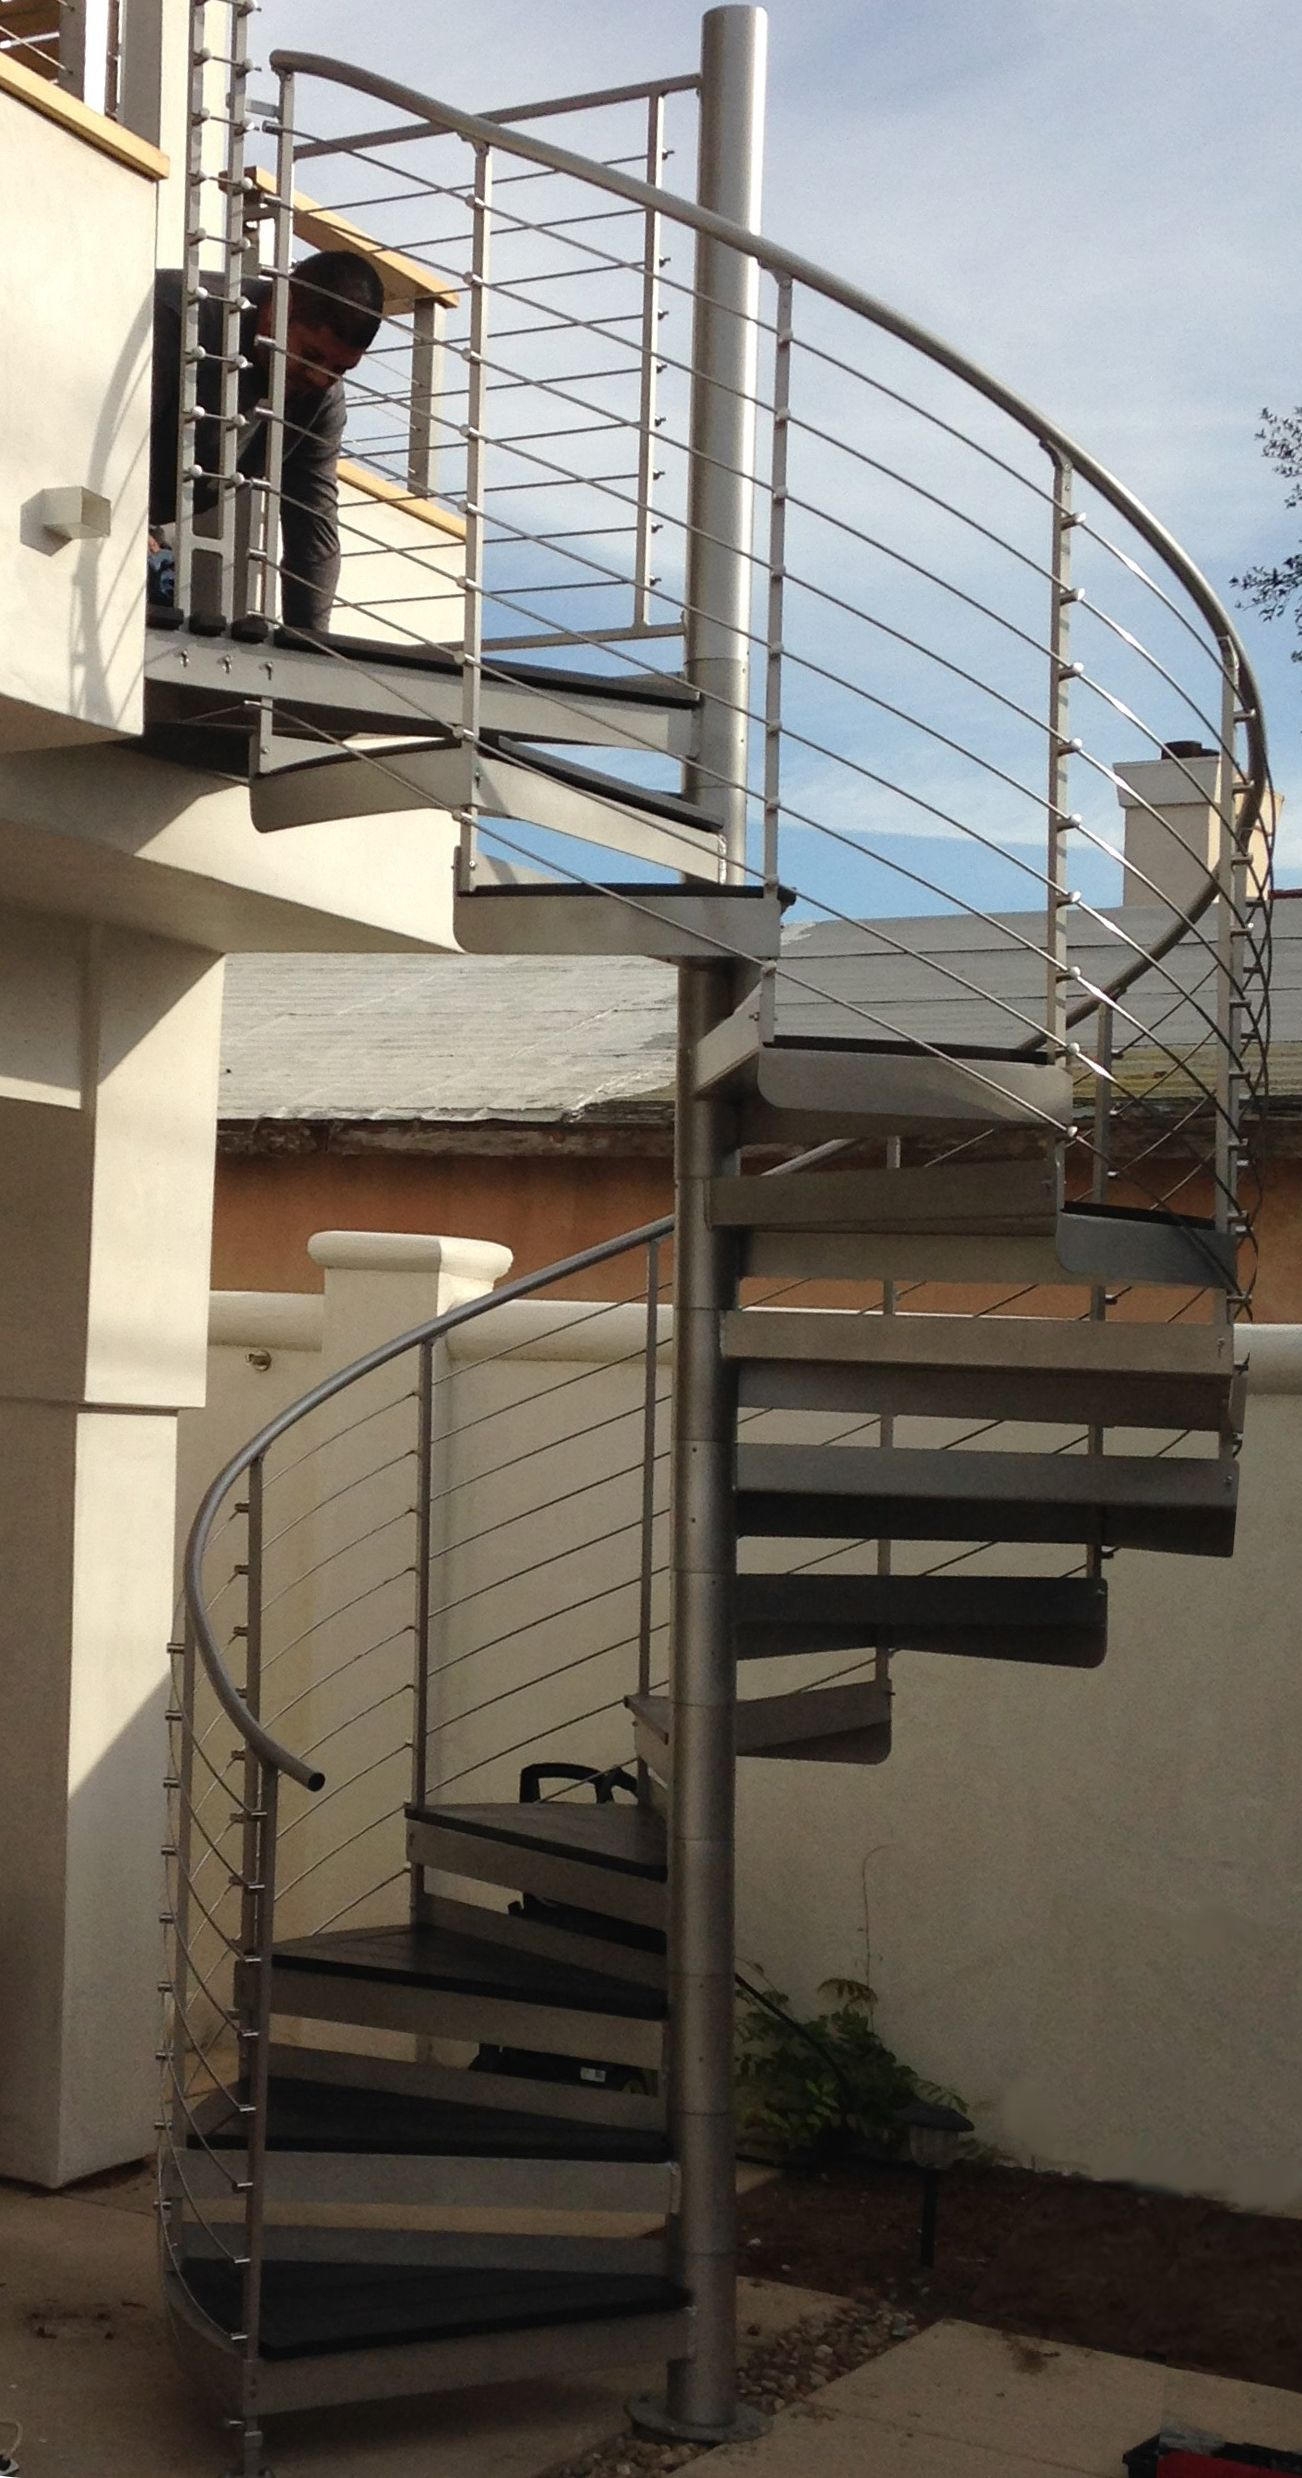 Metal Spiral Staircase Photo Gallery The Iron Shop Spiral Stairs | Iron Shop Spiral Stairs | Attic Loft | Victorian | Loft Staircase | Elk Grove | Staircase Kits